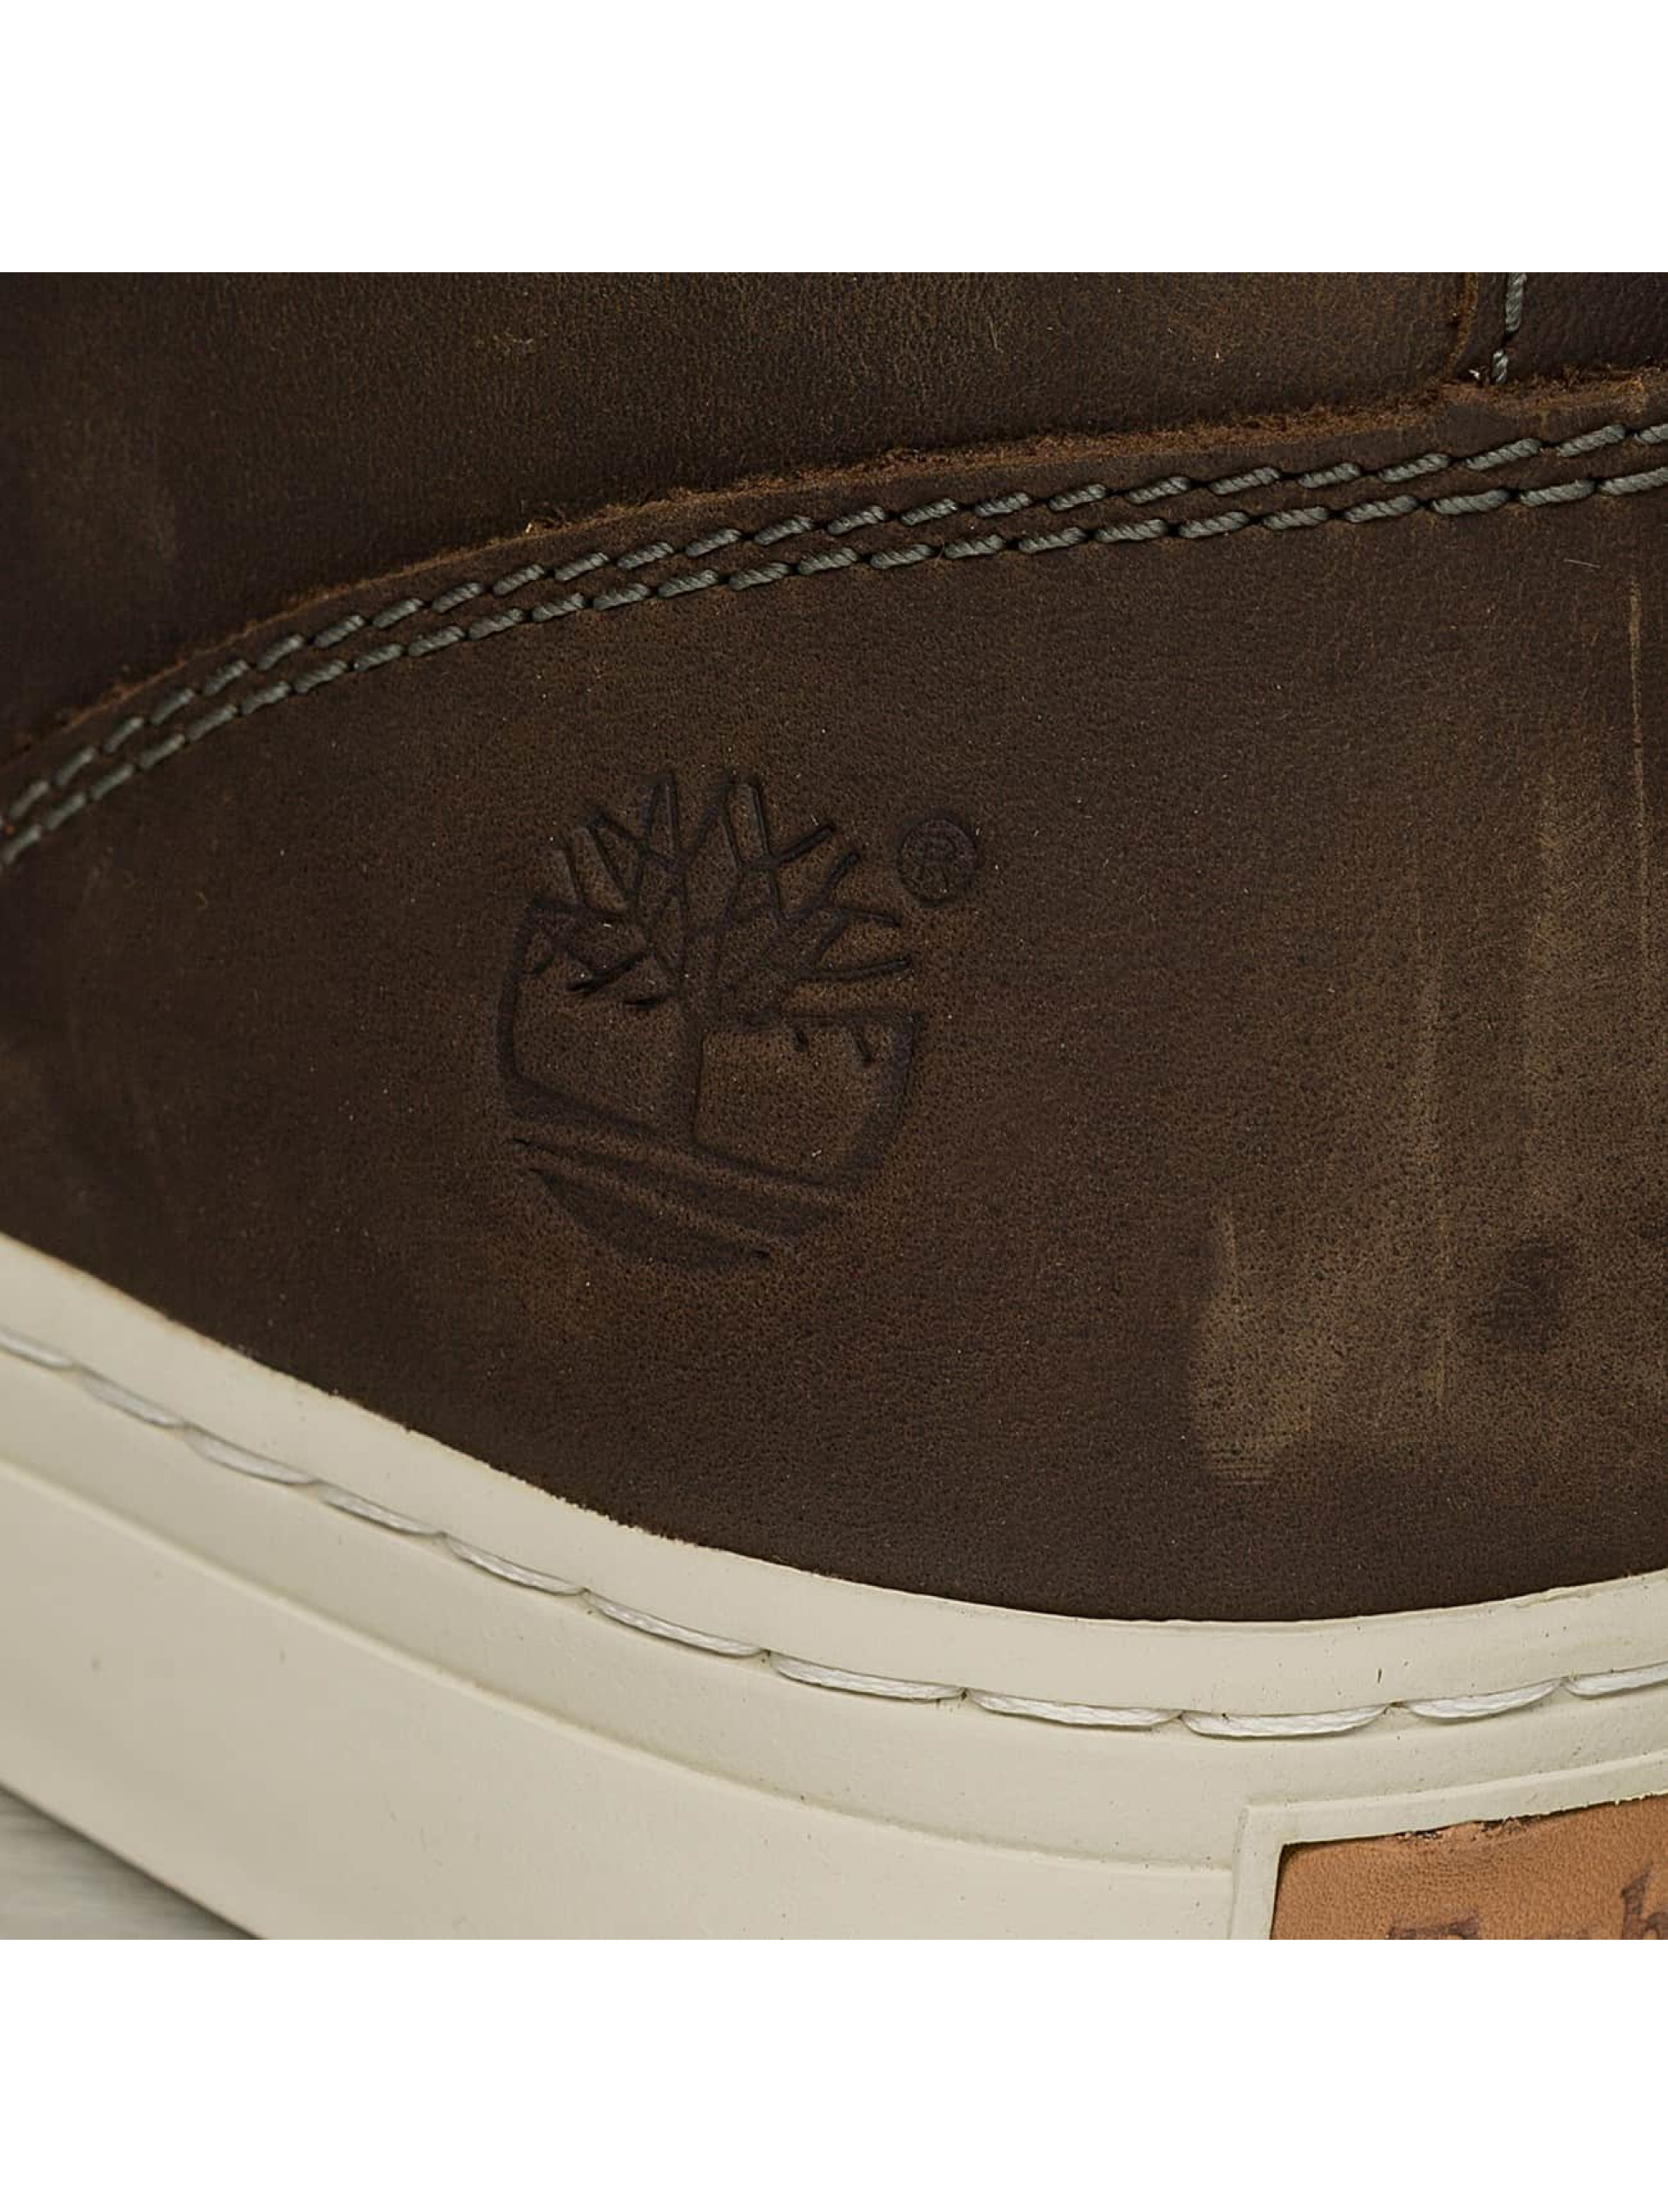 Timberland Sneakers Earthkeepers Adventure 2.0 Cupsole Chukka hnedá